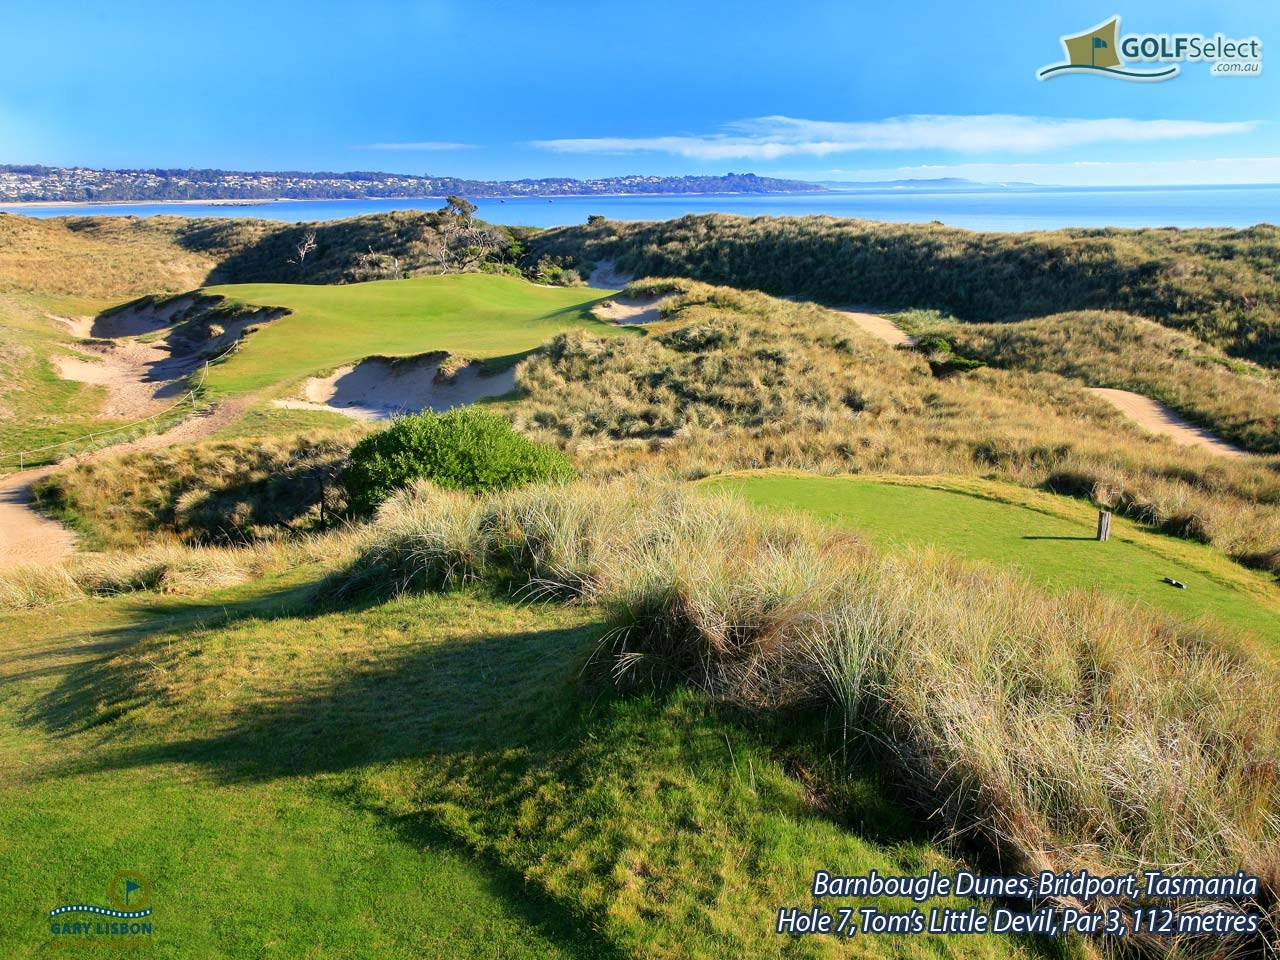 Golfselect Golf Wallpaper Barnbougle Dunes Golf Links